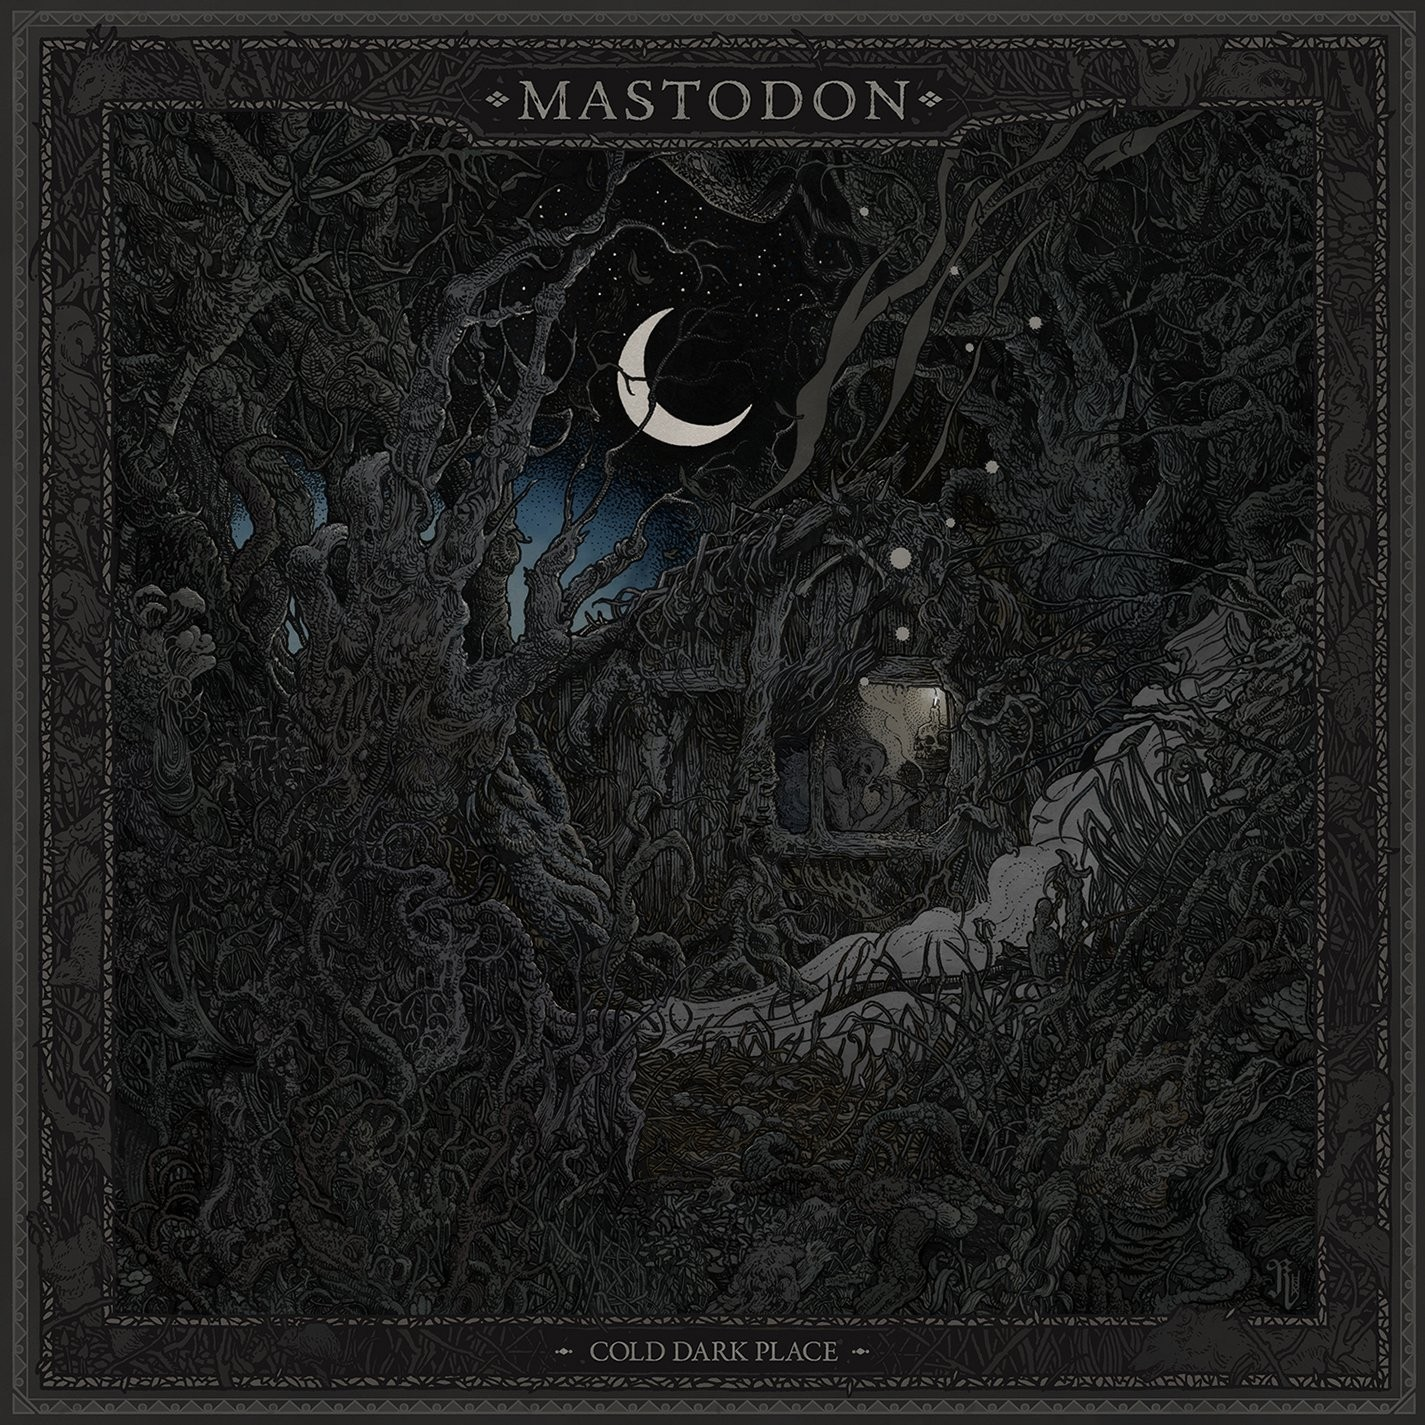 Mastodon - Cold Dark Place EP